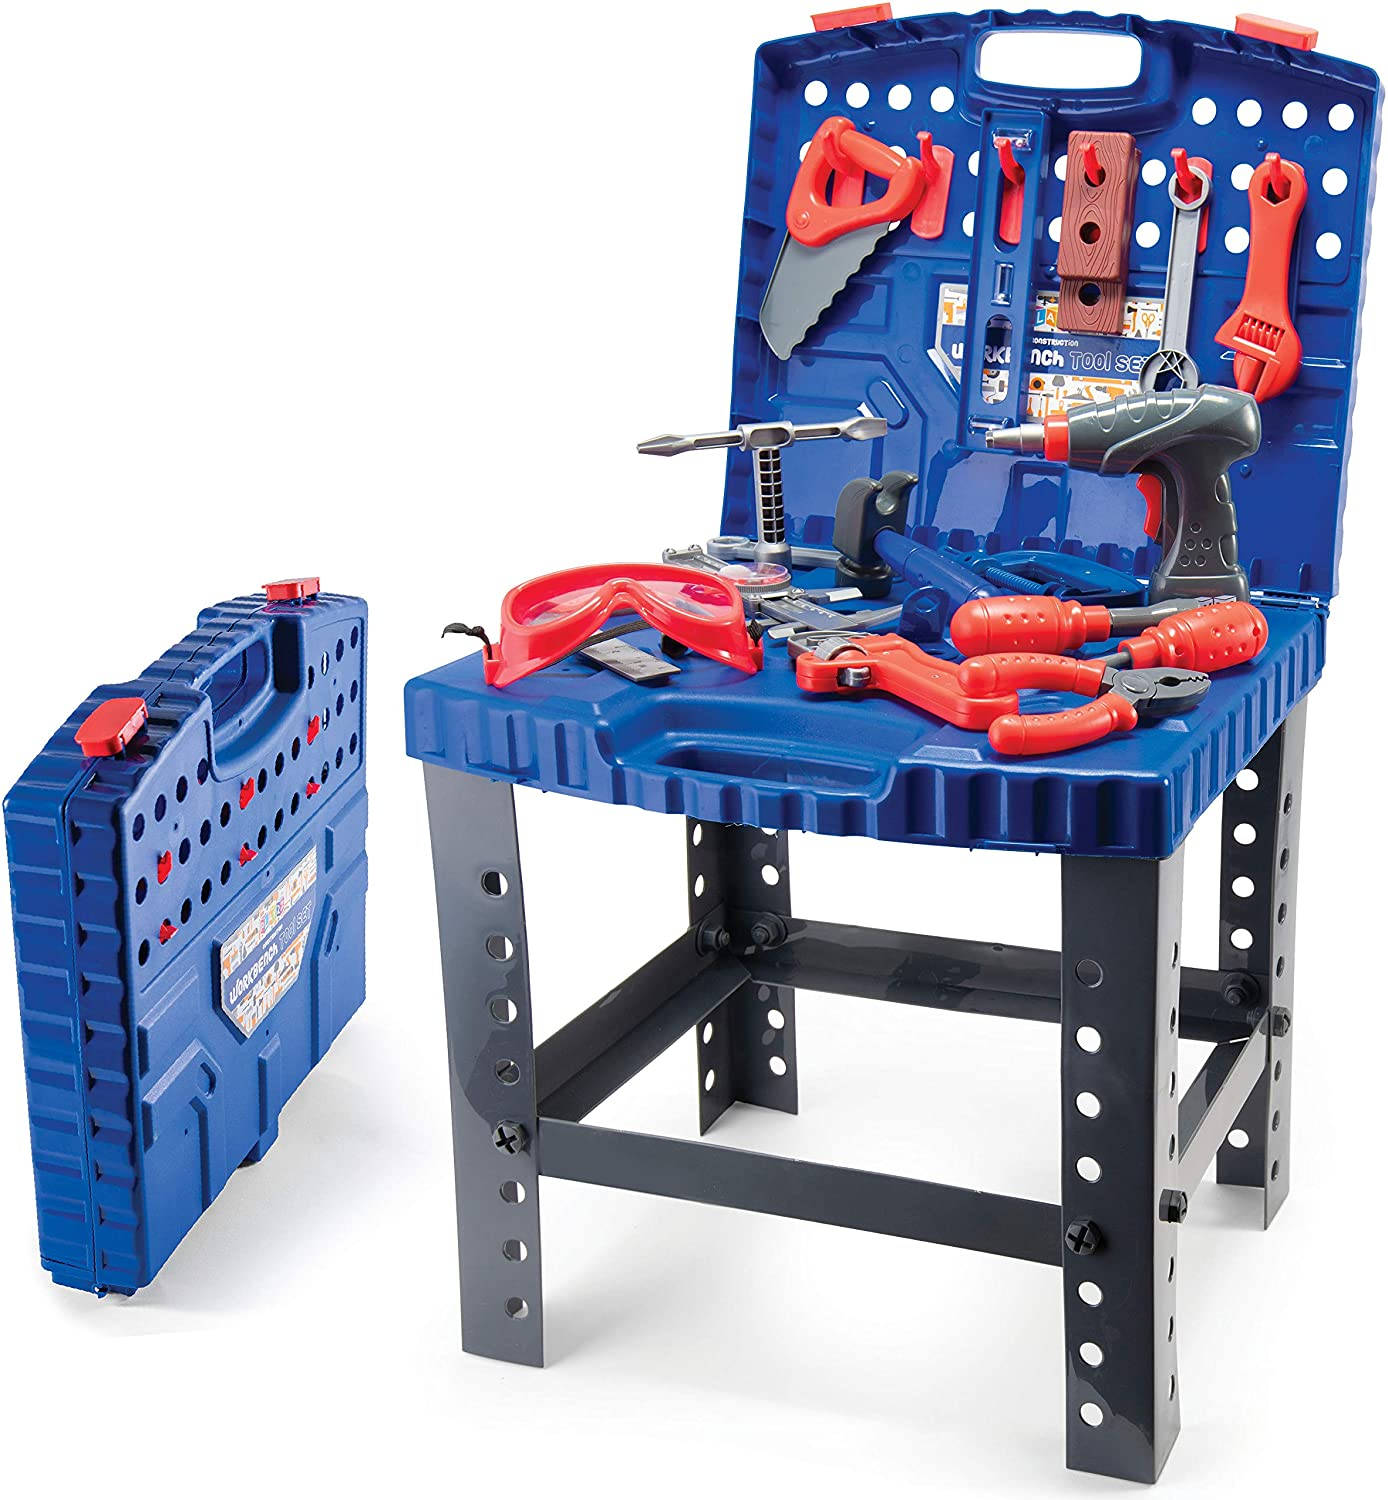 Play22 Kids Tool Workbench 78 Set - Kids Tool Set with Electronic Play Drill - STAM Educational Pretend Play Construction Workshop Tool Bench - Pretend Play Tool Set Build Your Own Kids Tool Box